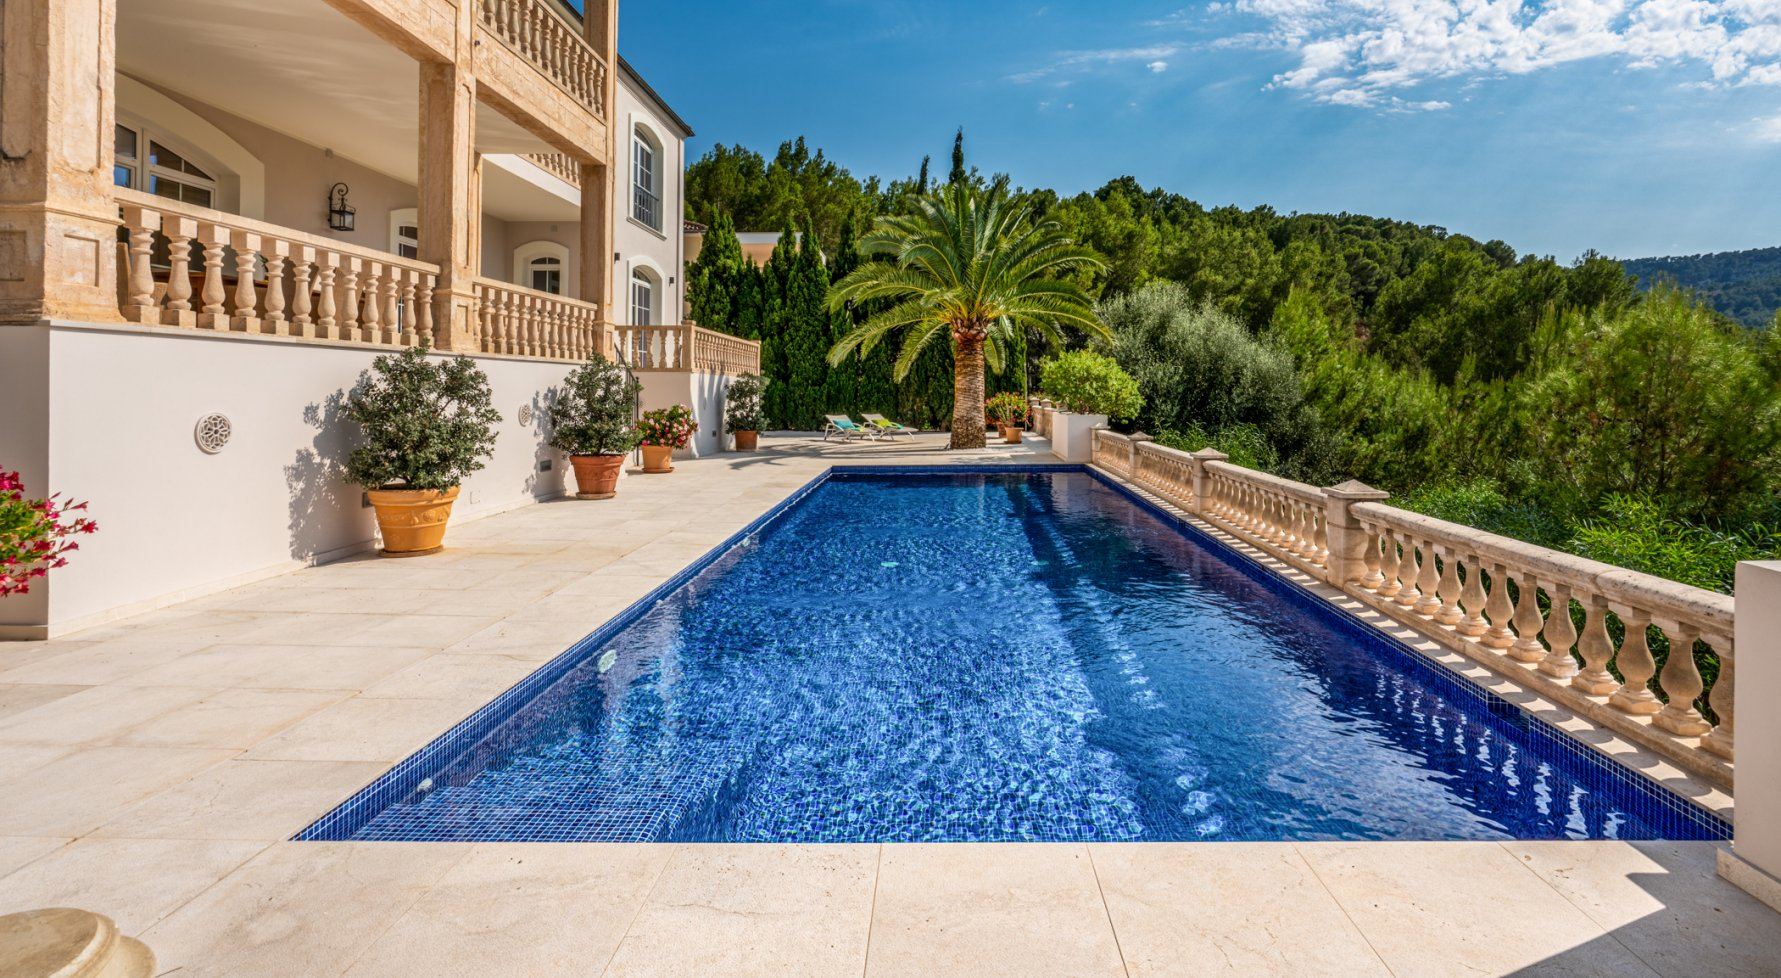 Property in 07013 Son Vida - nahe Palma de Mallorca: STAGE FREE! Impressing family residence right on the golf course in Son Vida! - picture 1